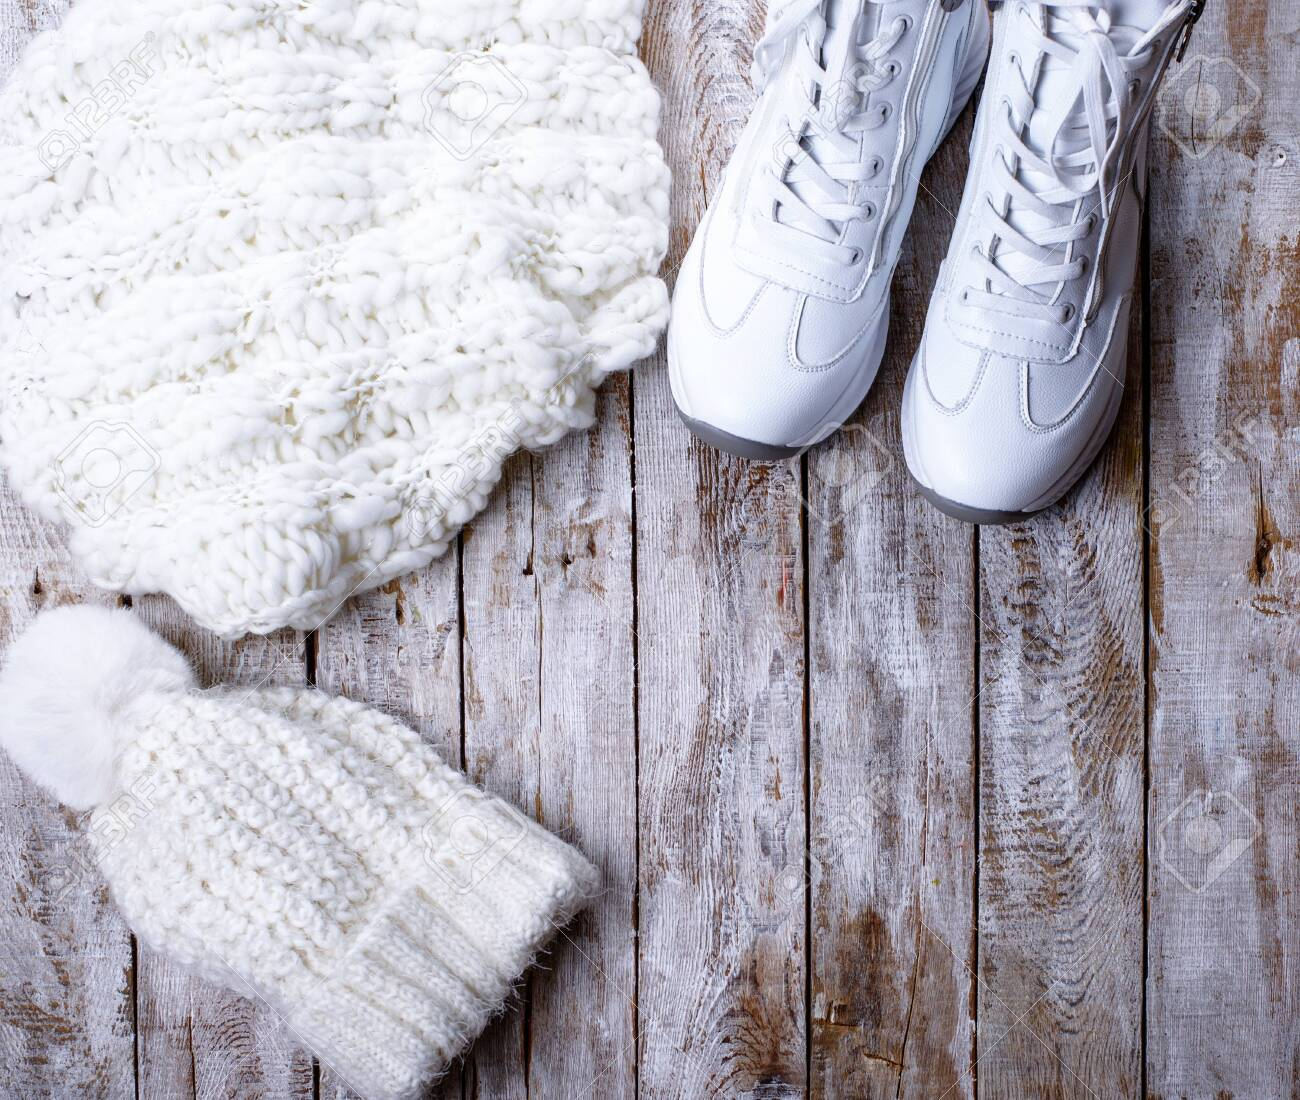 white winter clothes for women on wooden background - 135119034